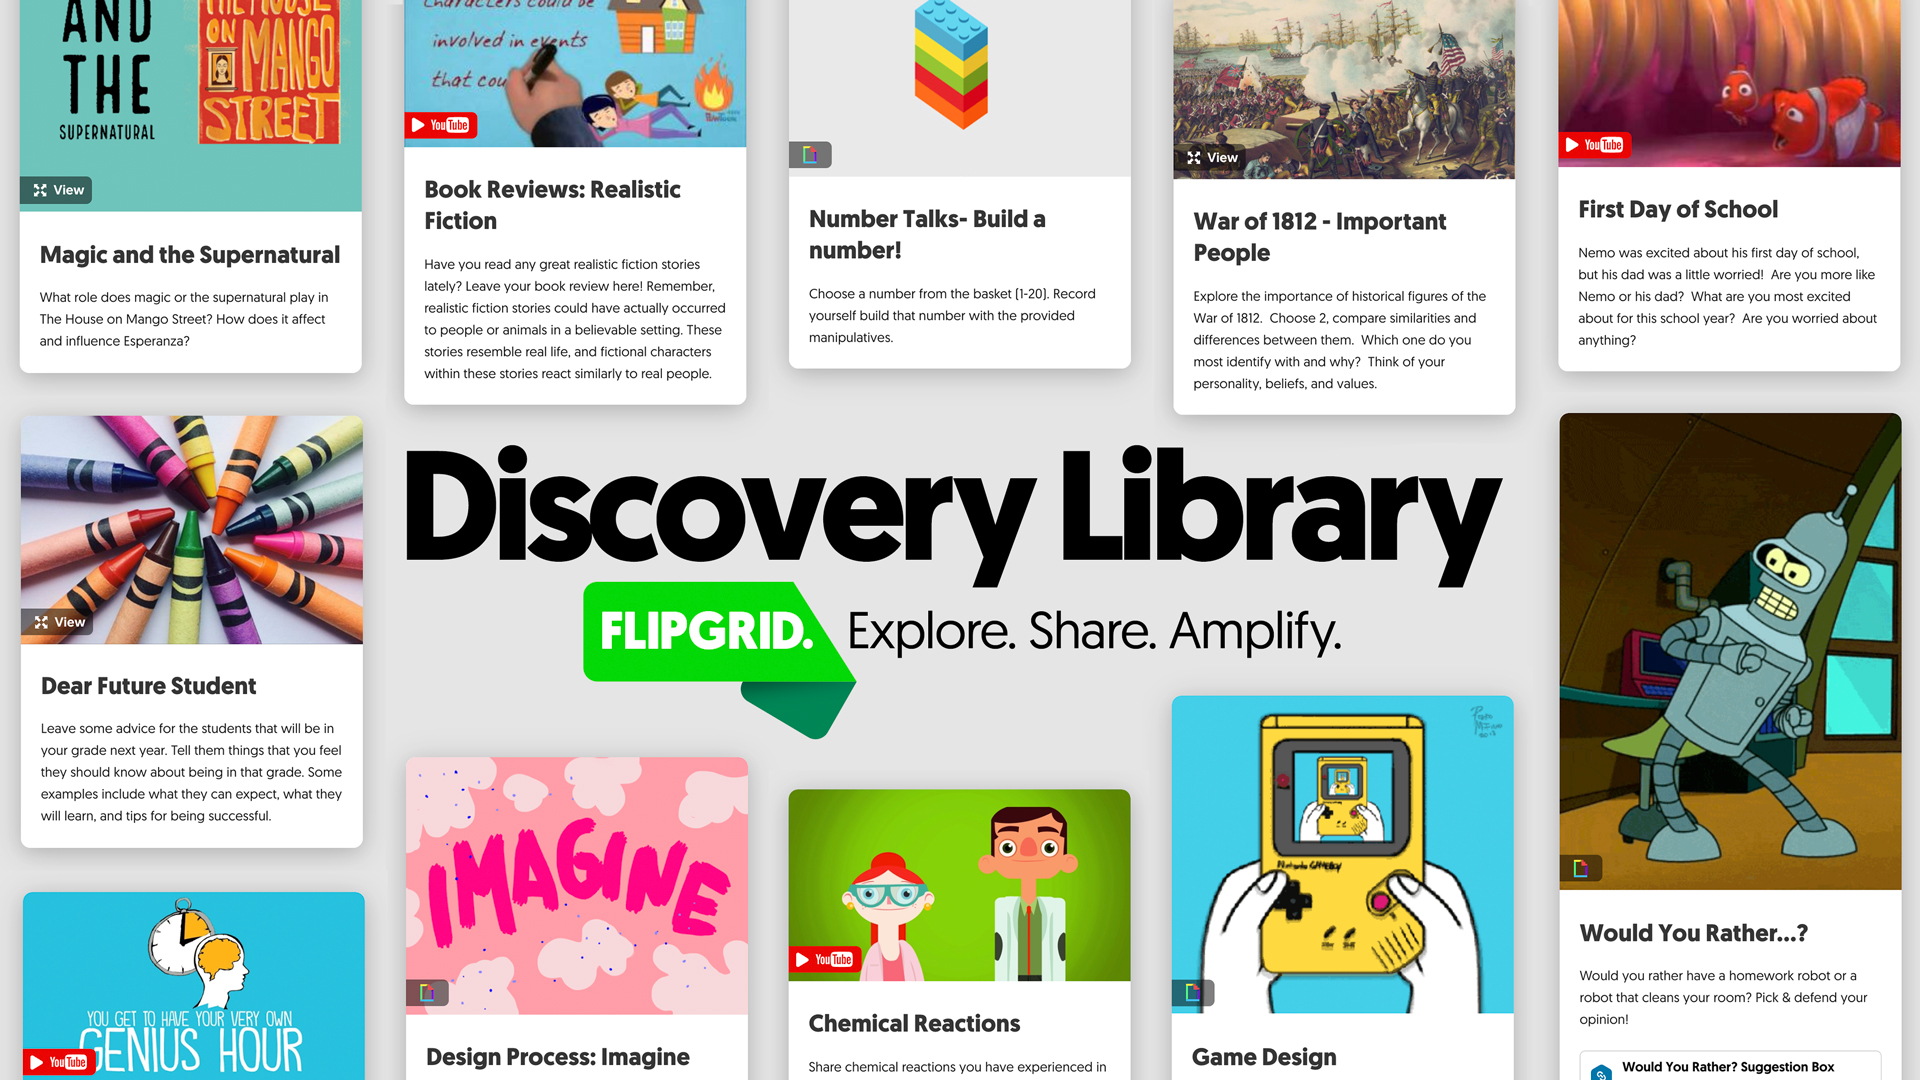 discoveryLibrary.jpg